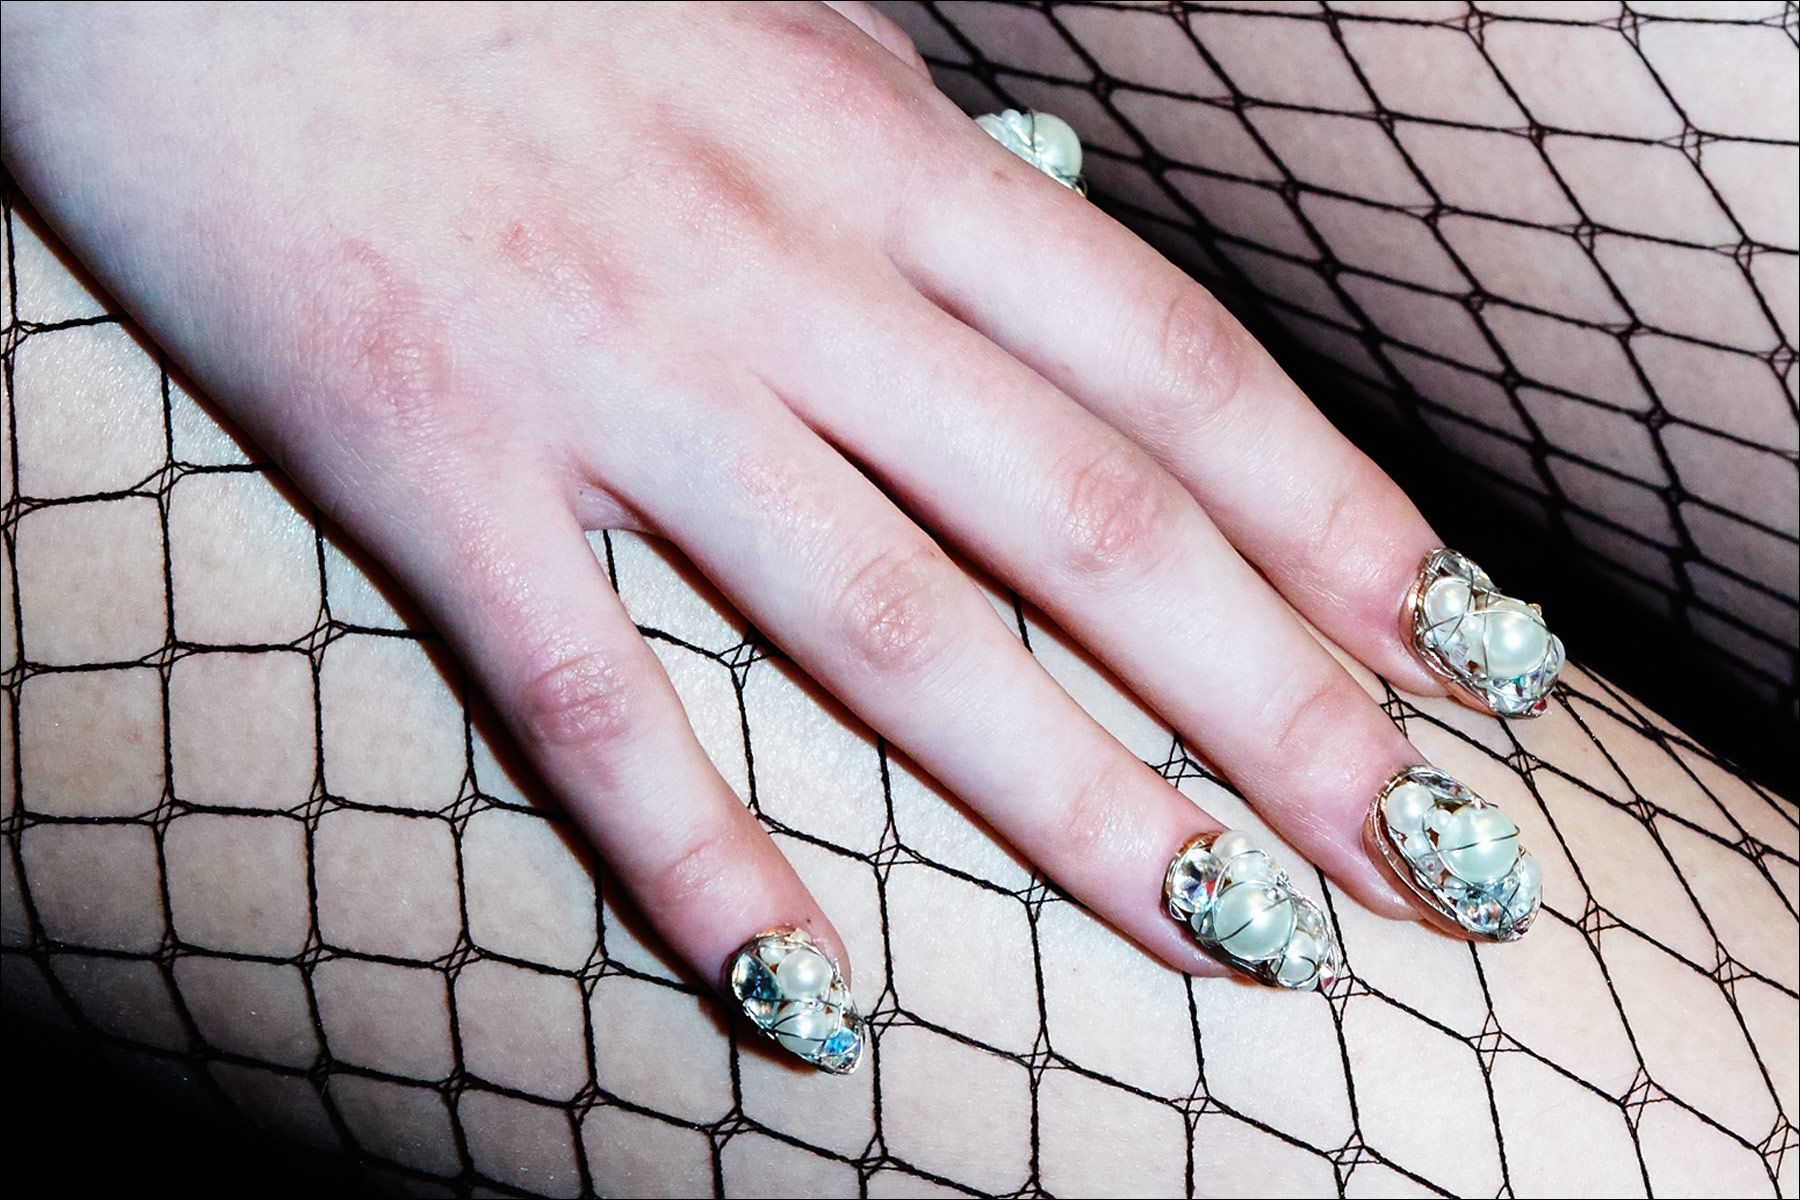 Elaborate nail art snapped backstage at The Blonds Fall 2017 womenswear show. Photography by Alexander Thompson for Ponyboy magazine New York.